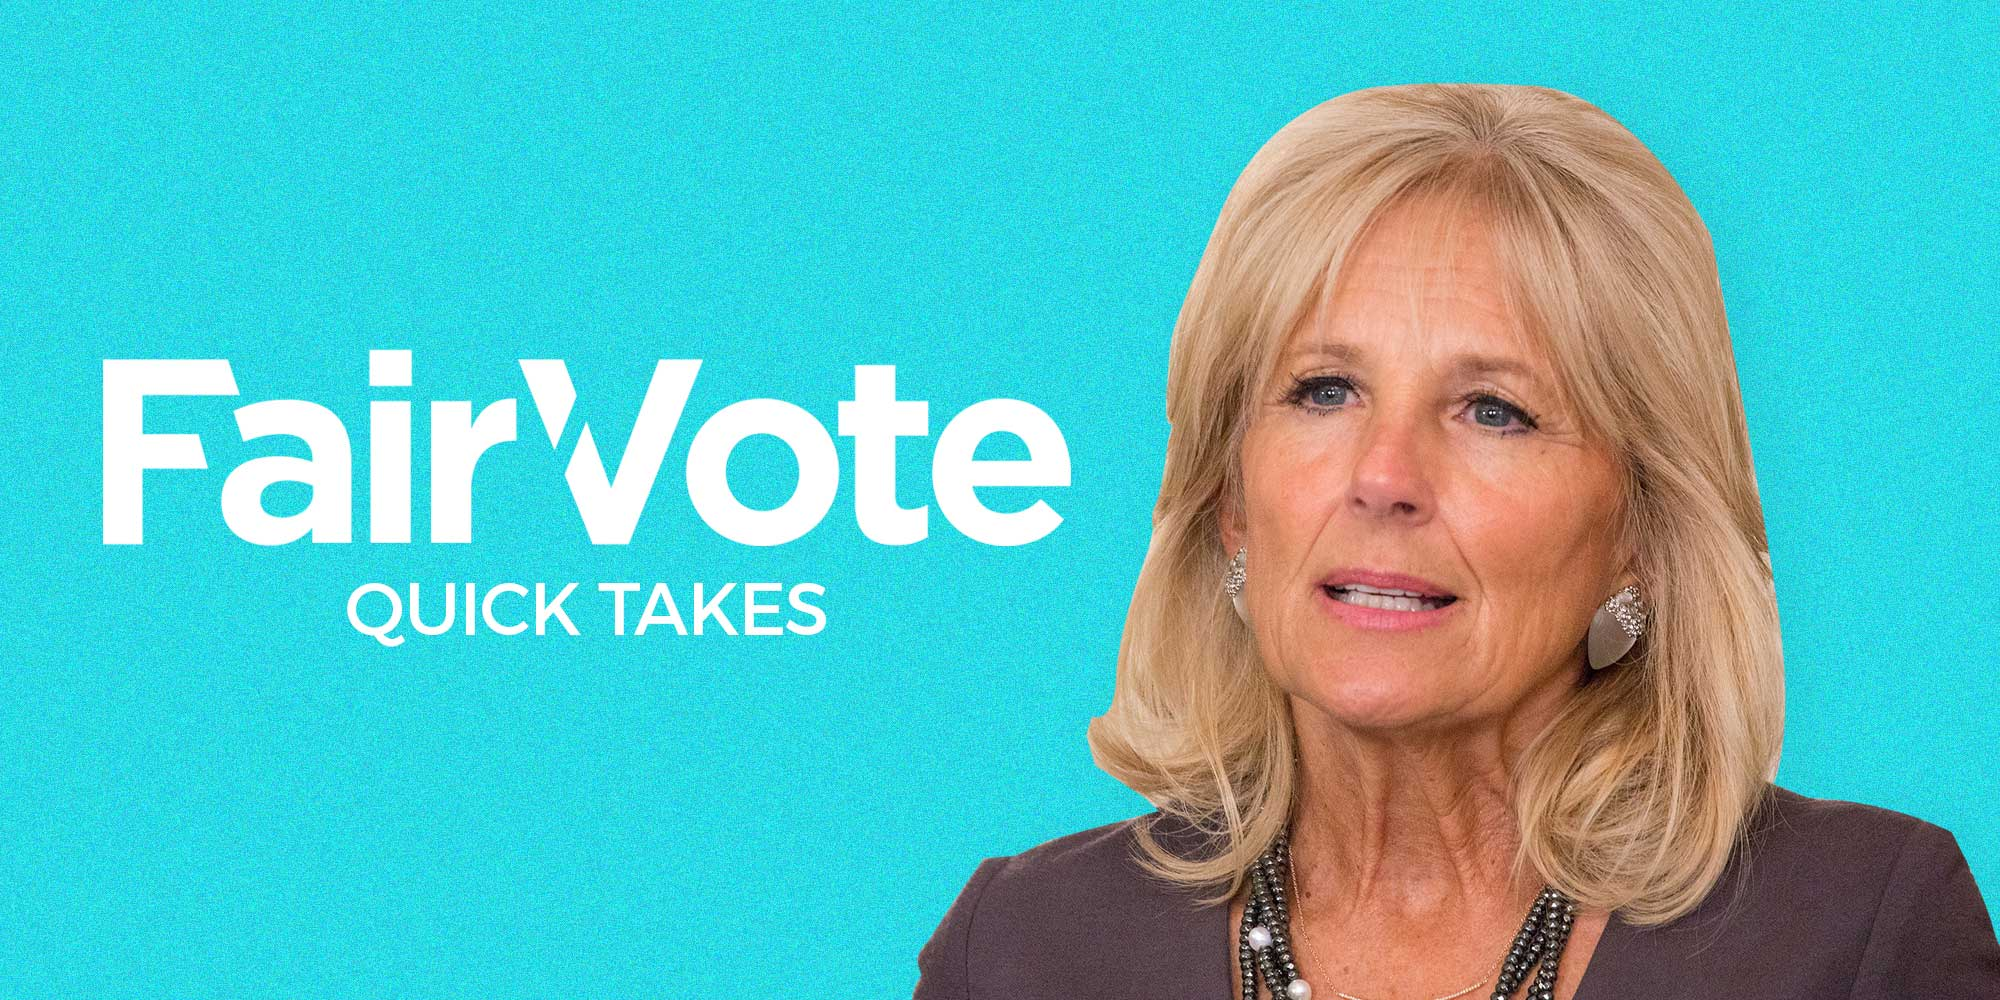 Dr. Jill Biden's comments demonstrate why we need Ranked Choice Voting